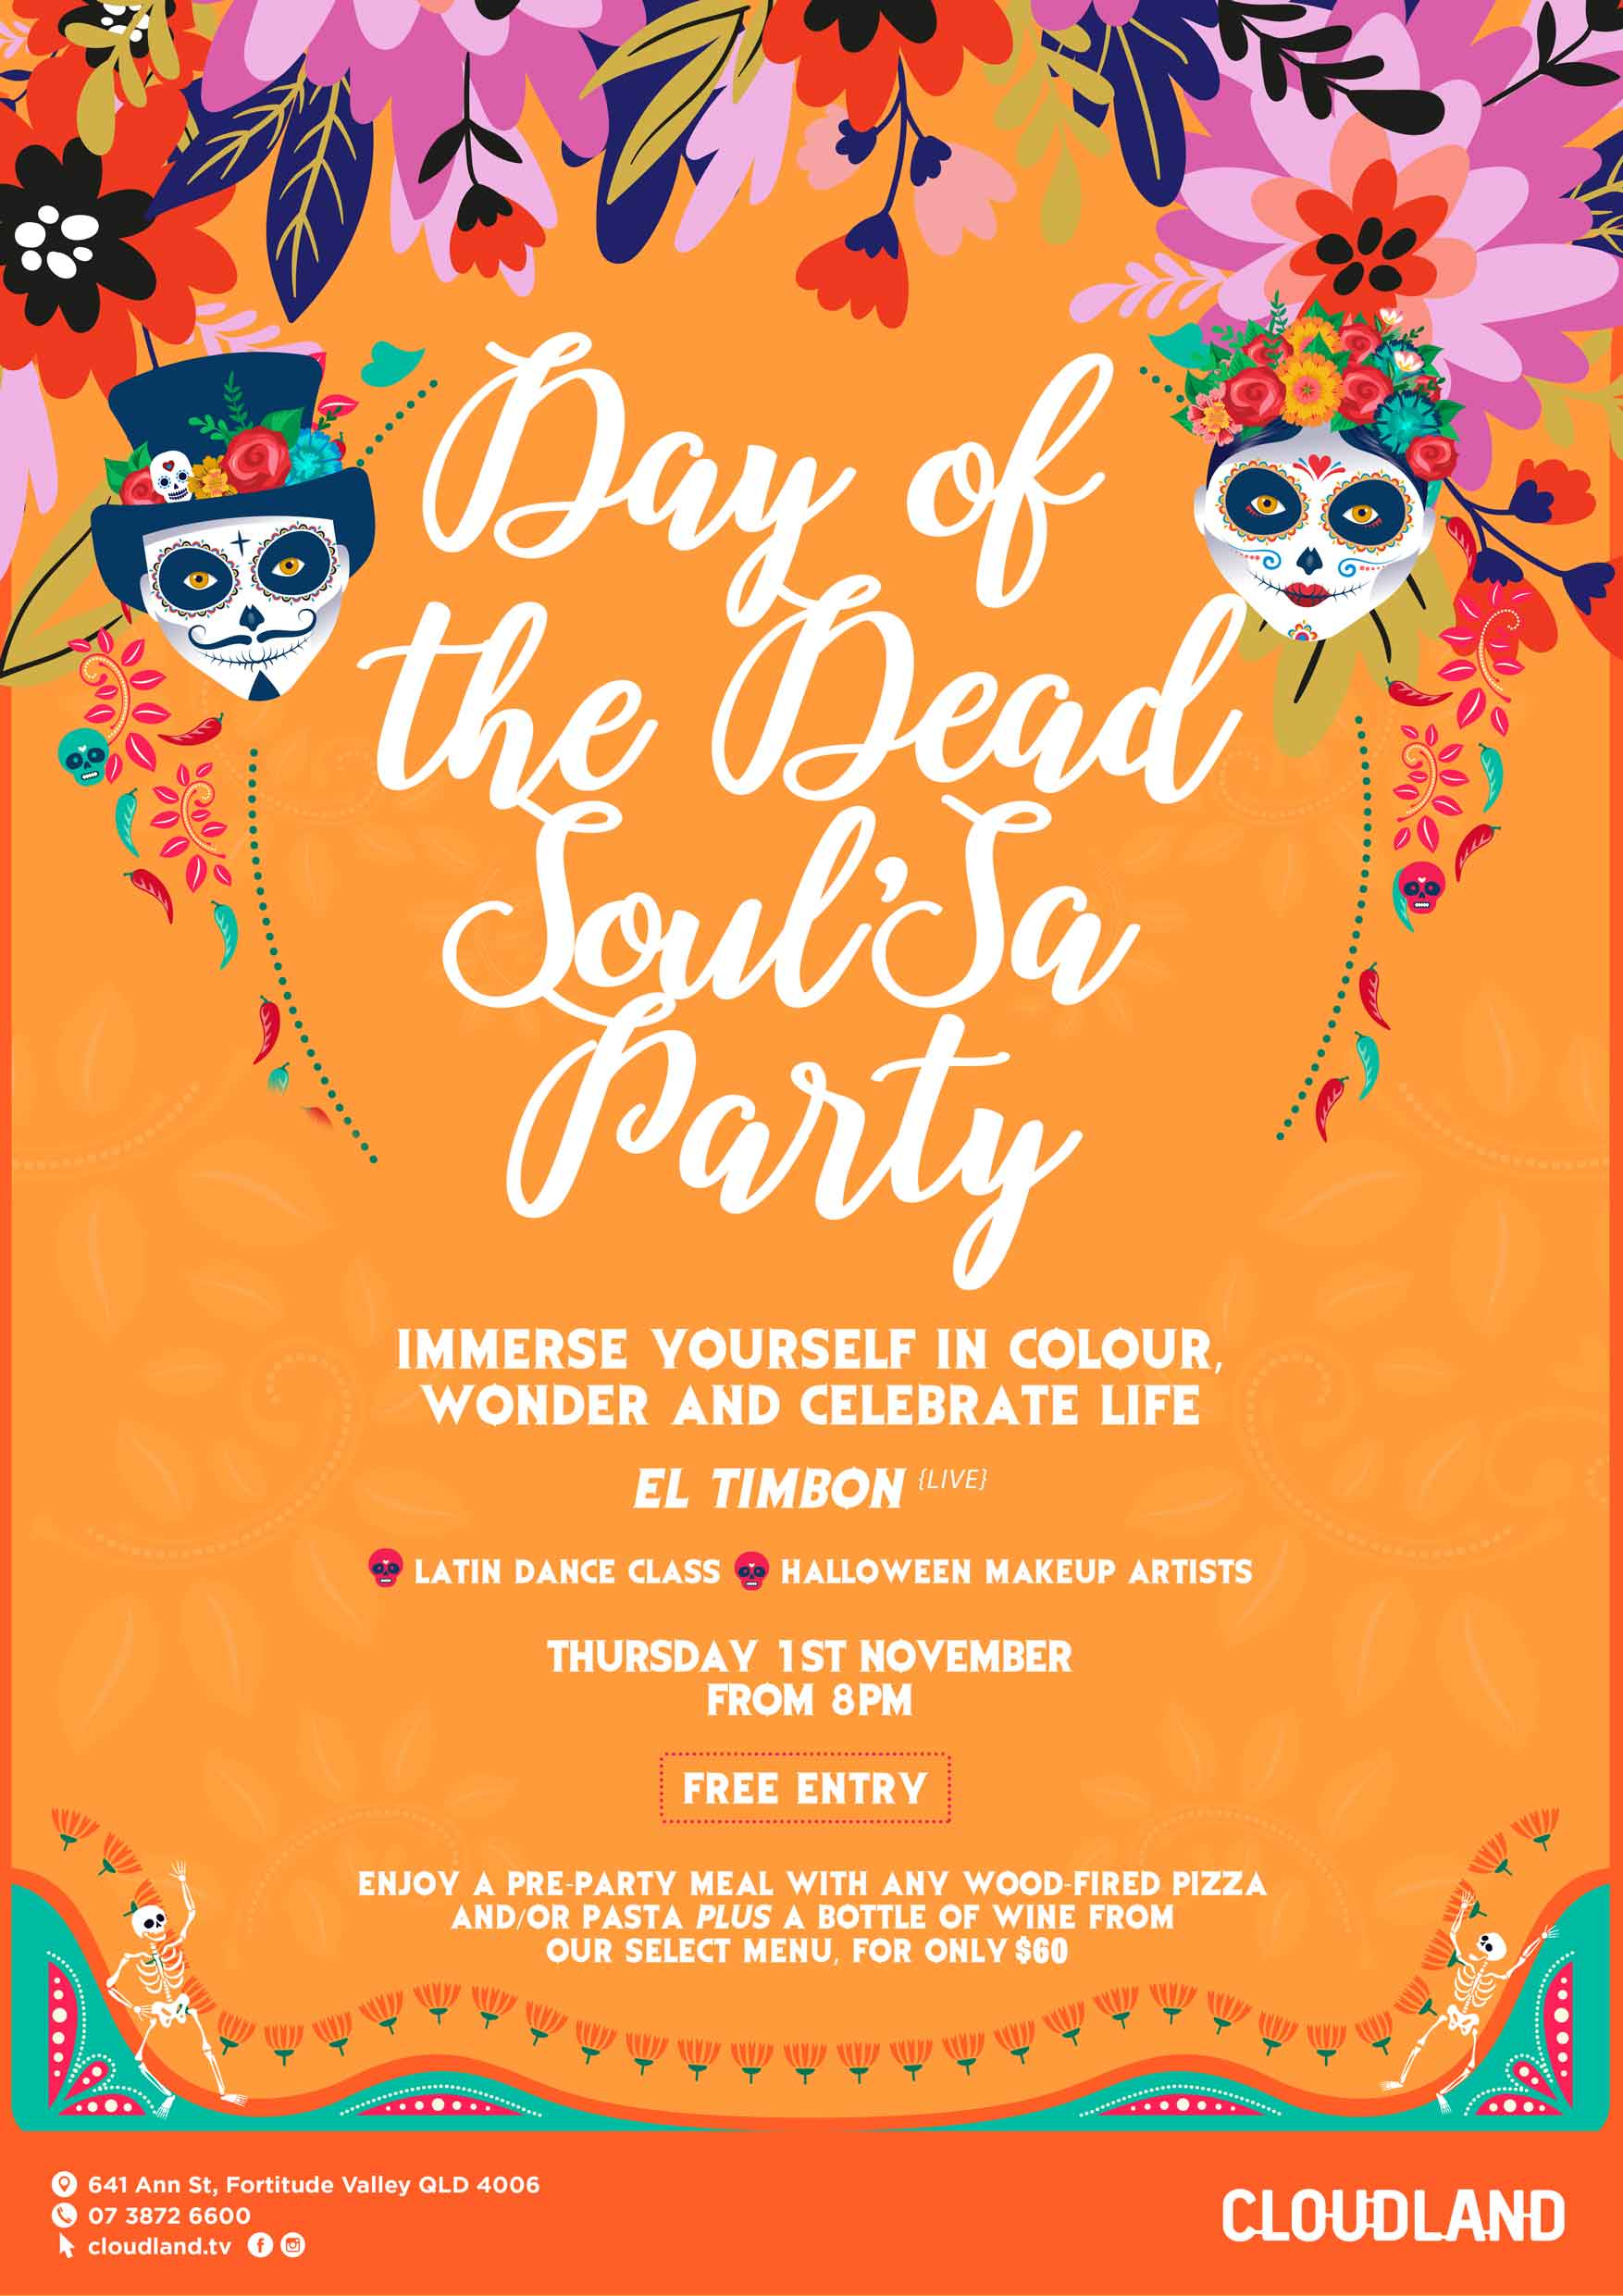 Day of the Dead Party Cloudland